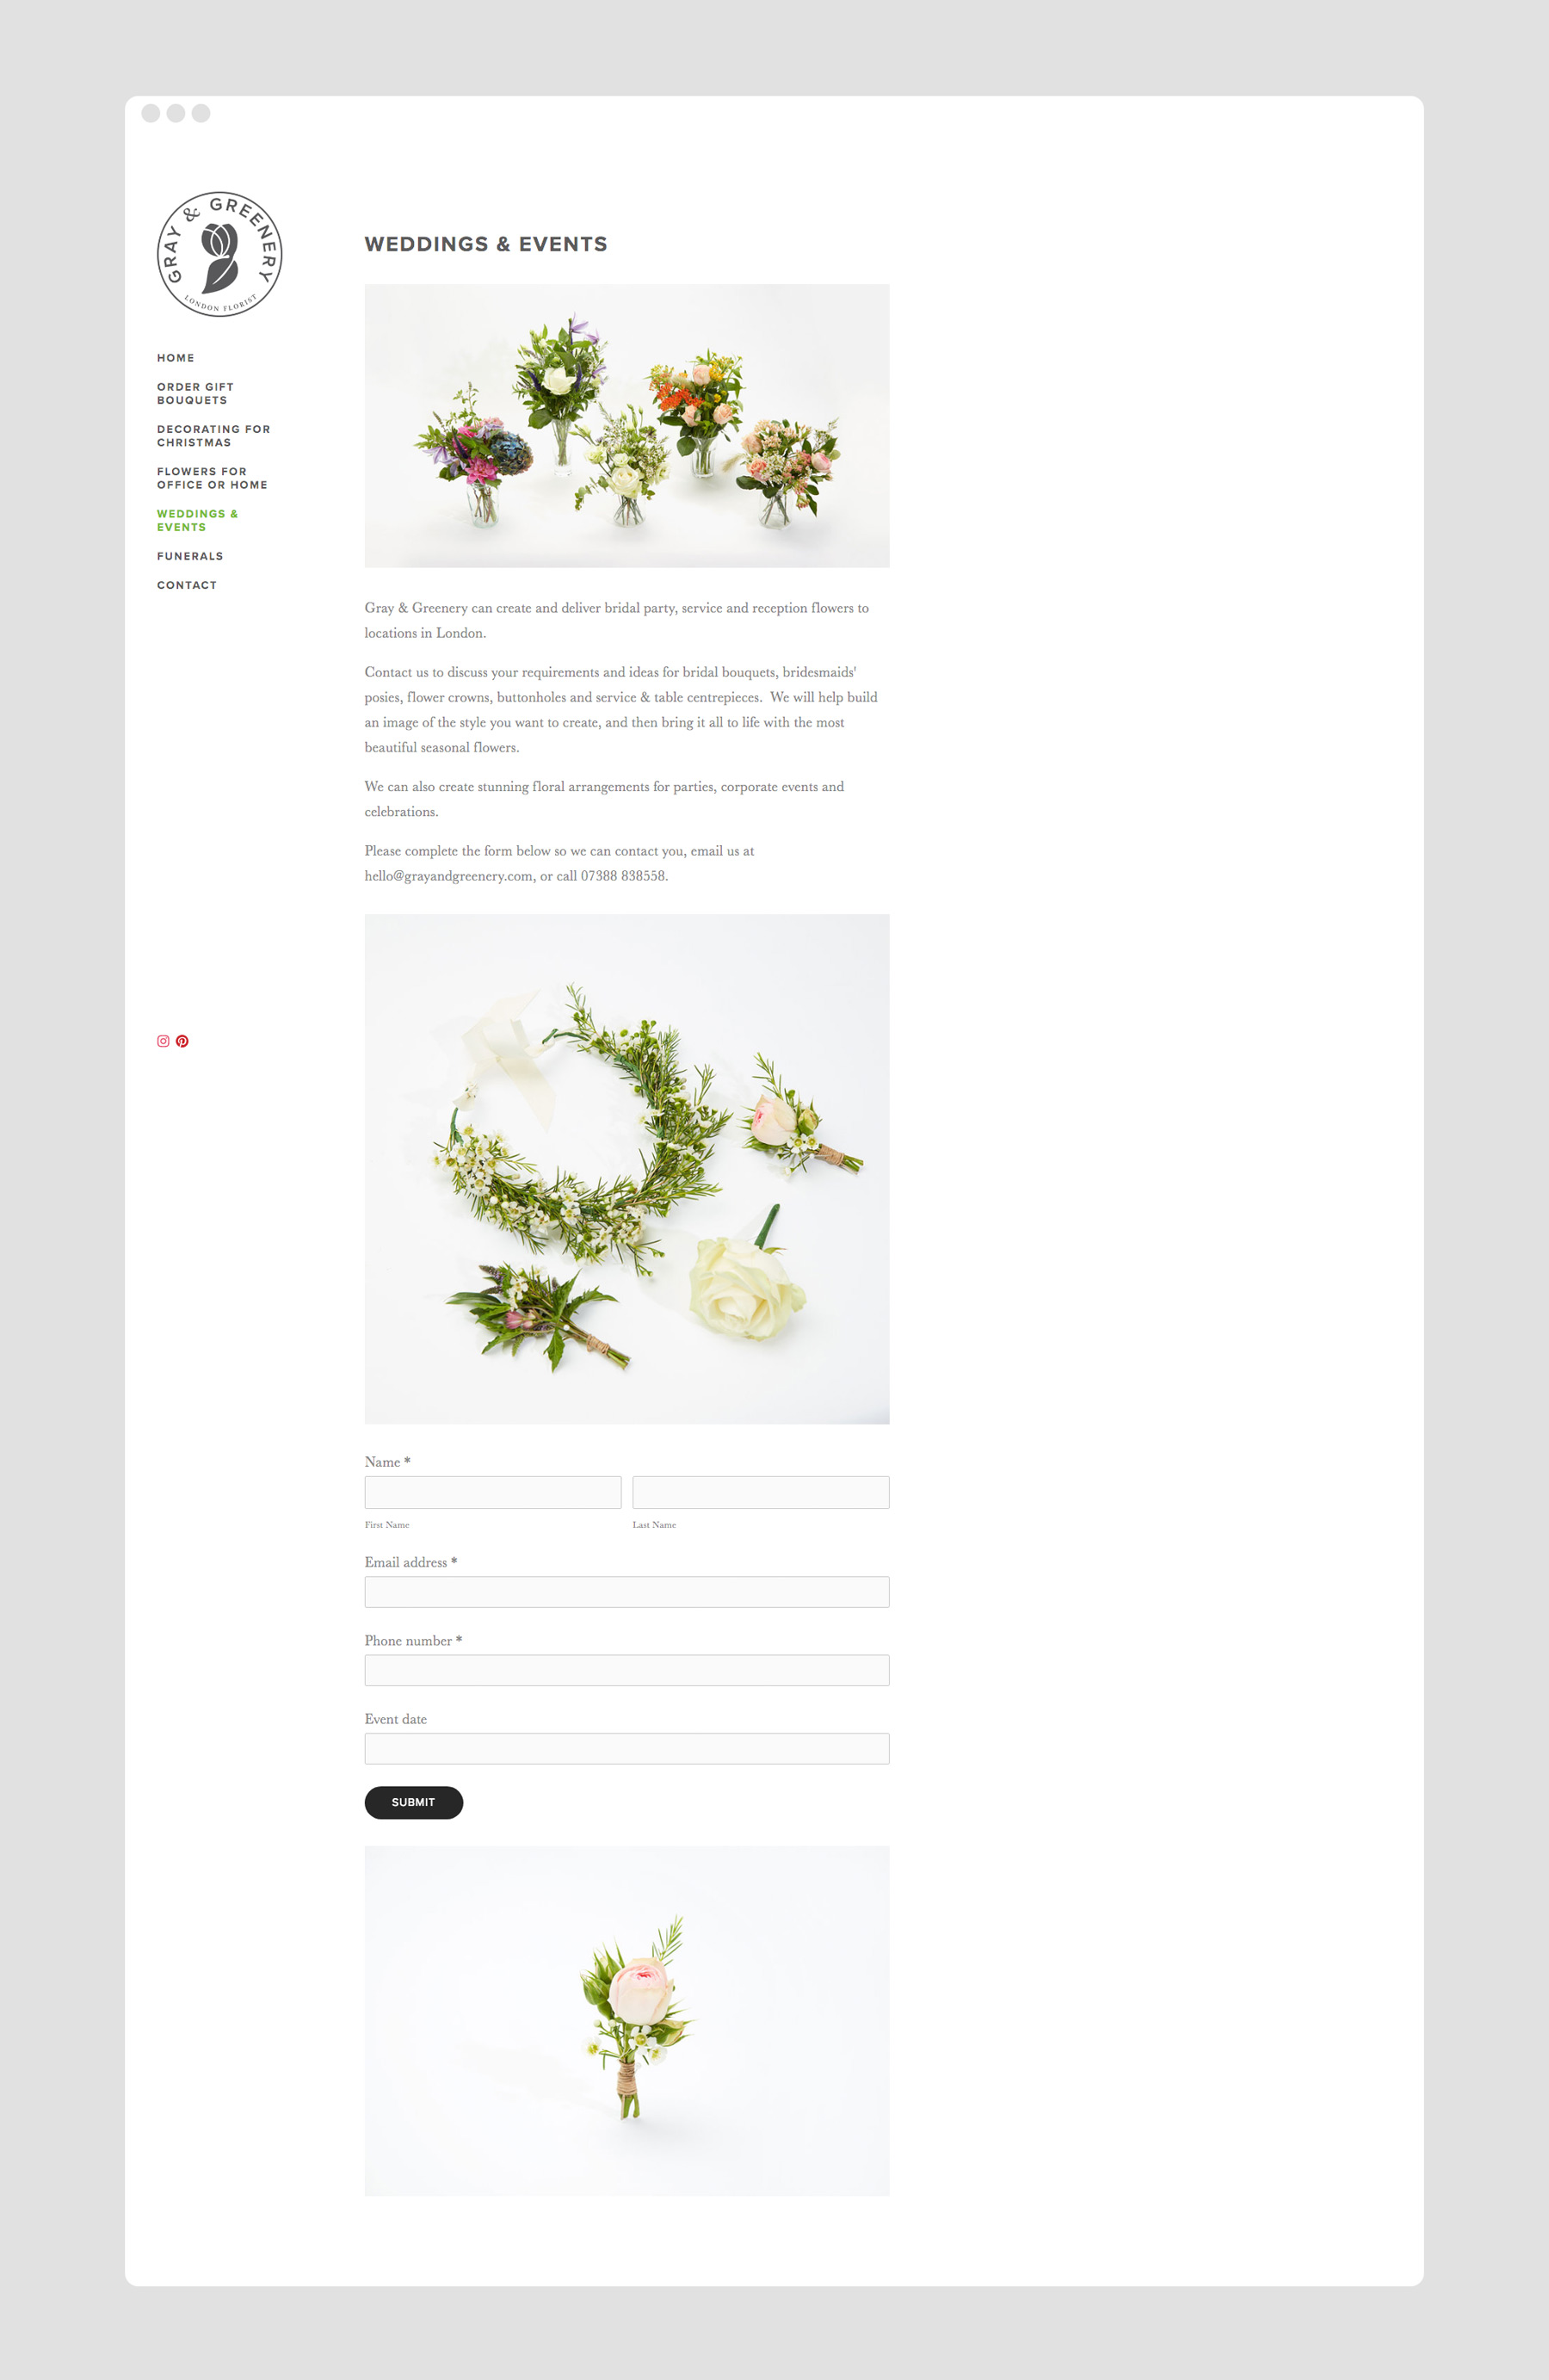 grayandgreenery-brand-and-design-by-ALSOAgency-WEDDINGS.jpg